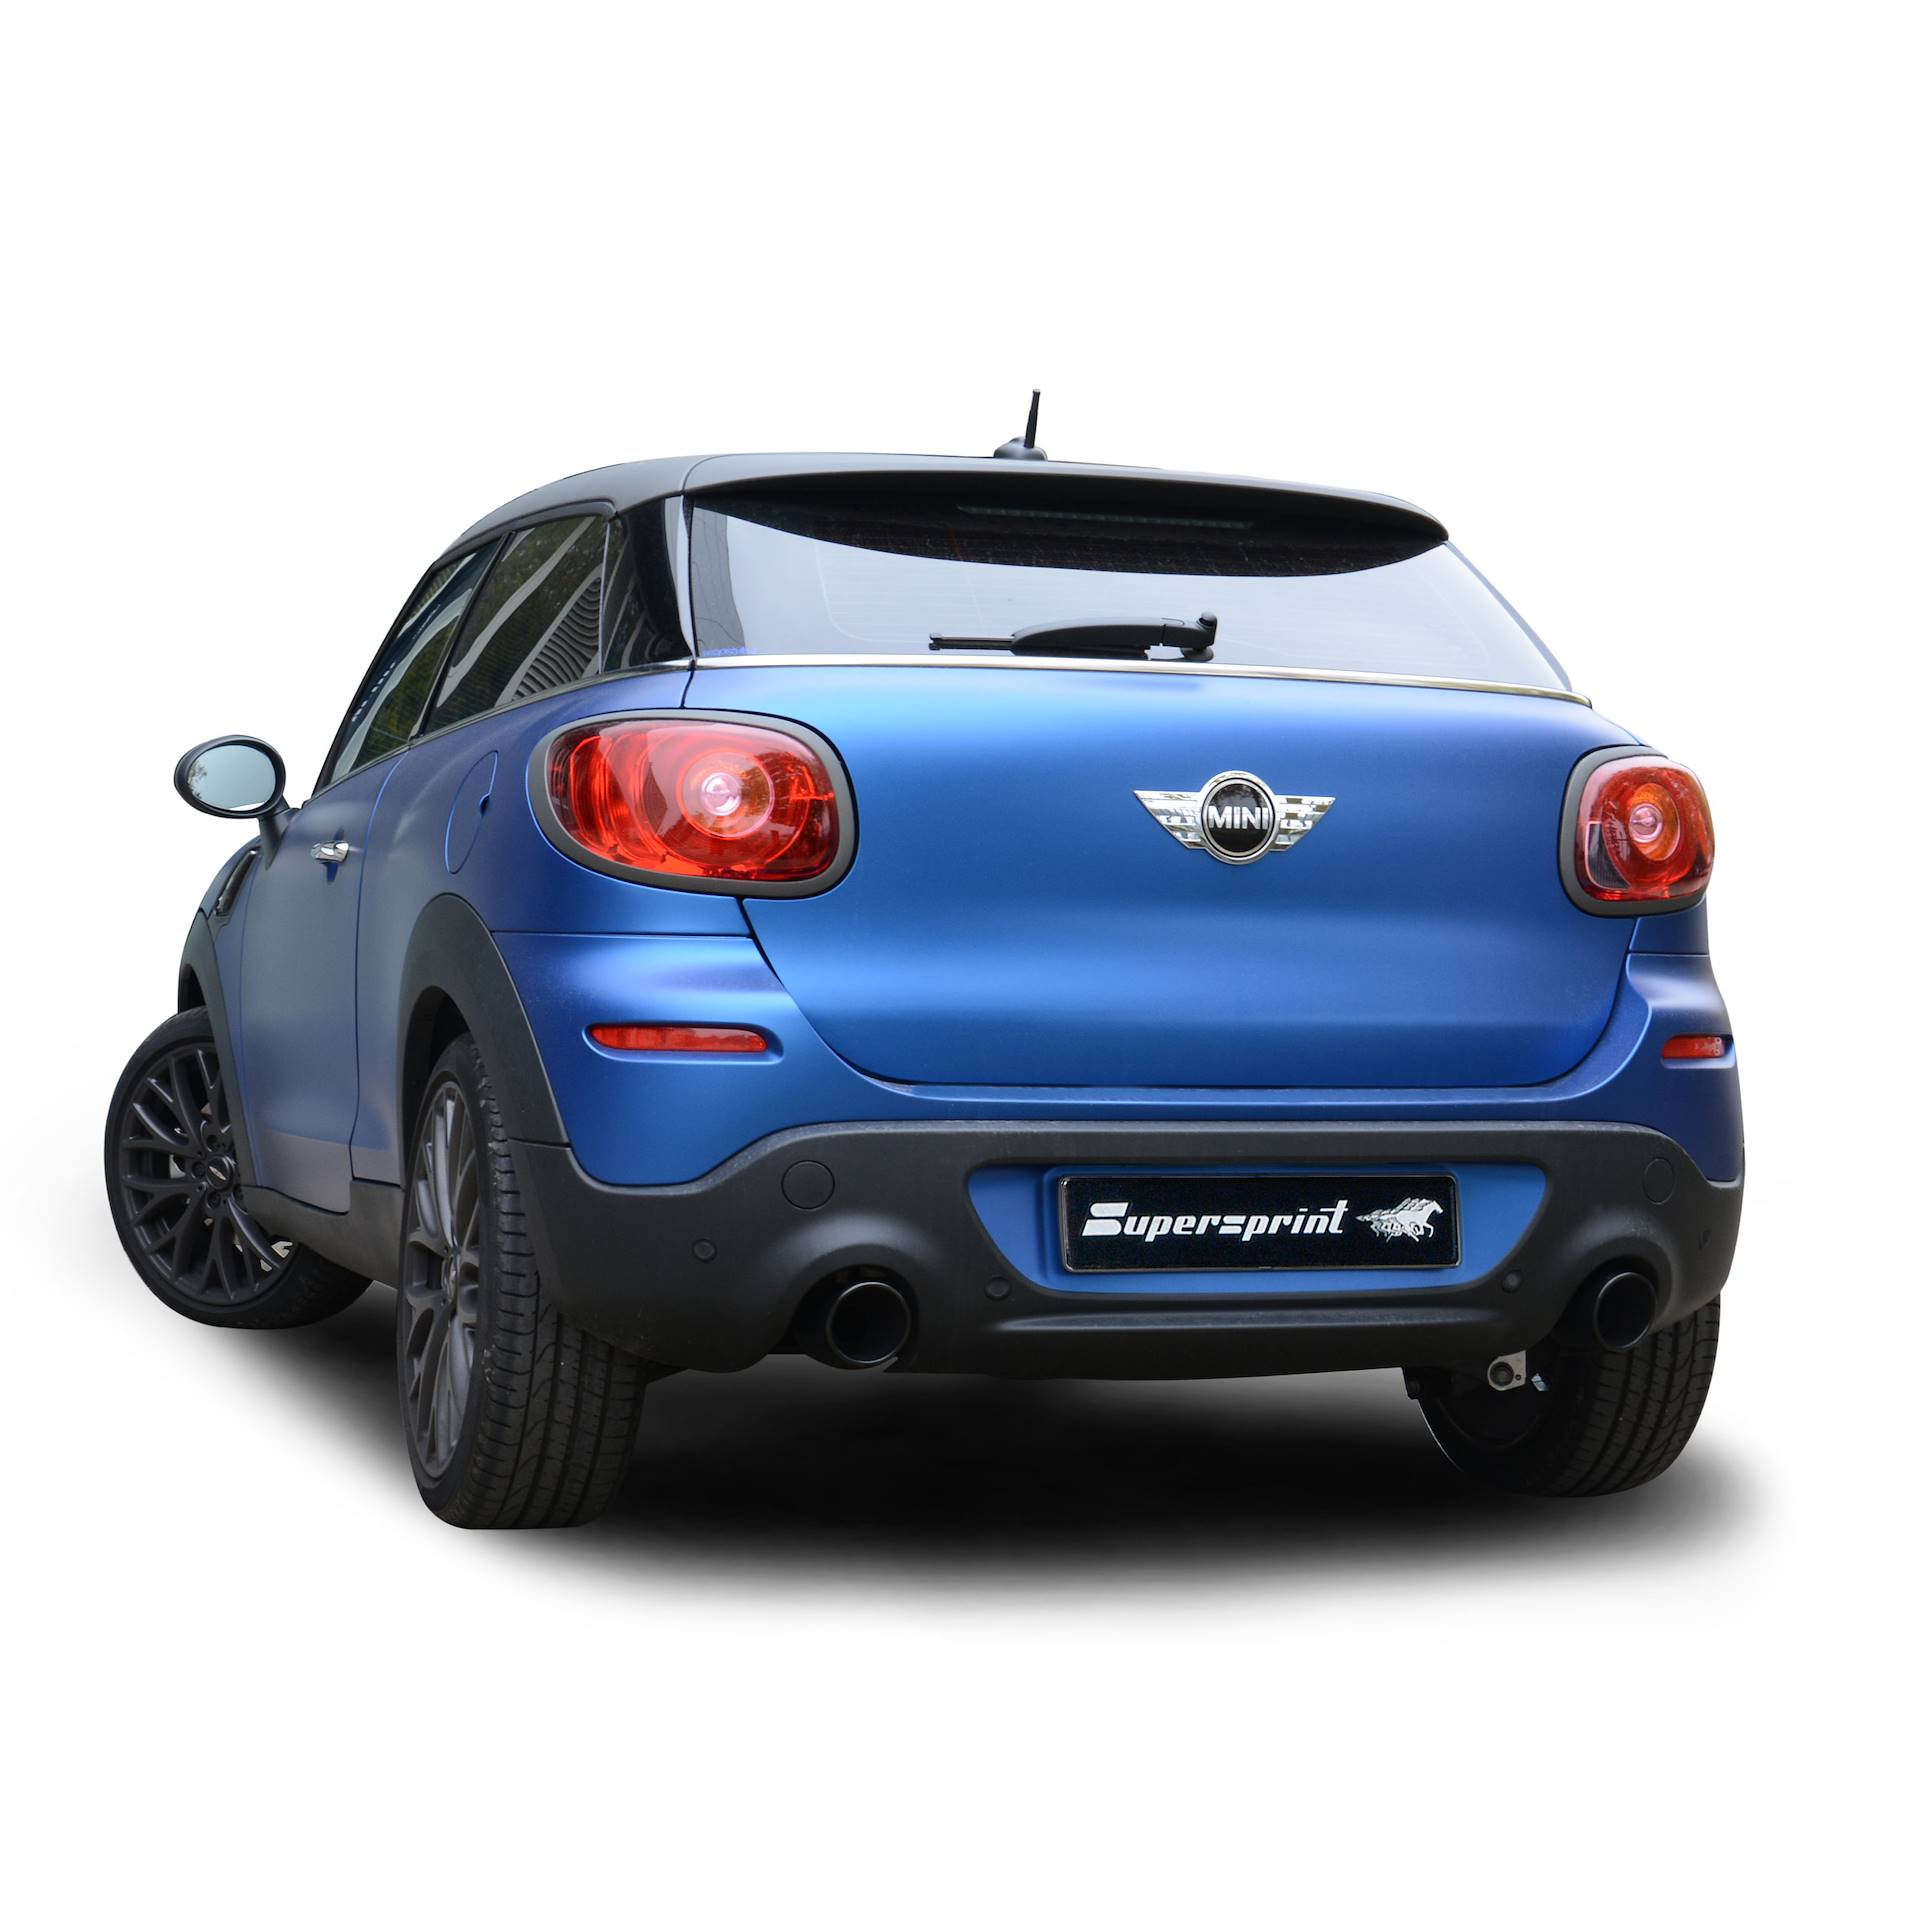 BMW MINI - BMW MINI Cooper S Paceman ALL4 1.6i Turbo 2013 ->